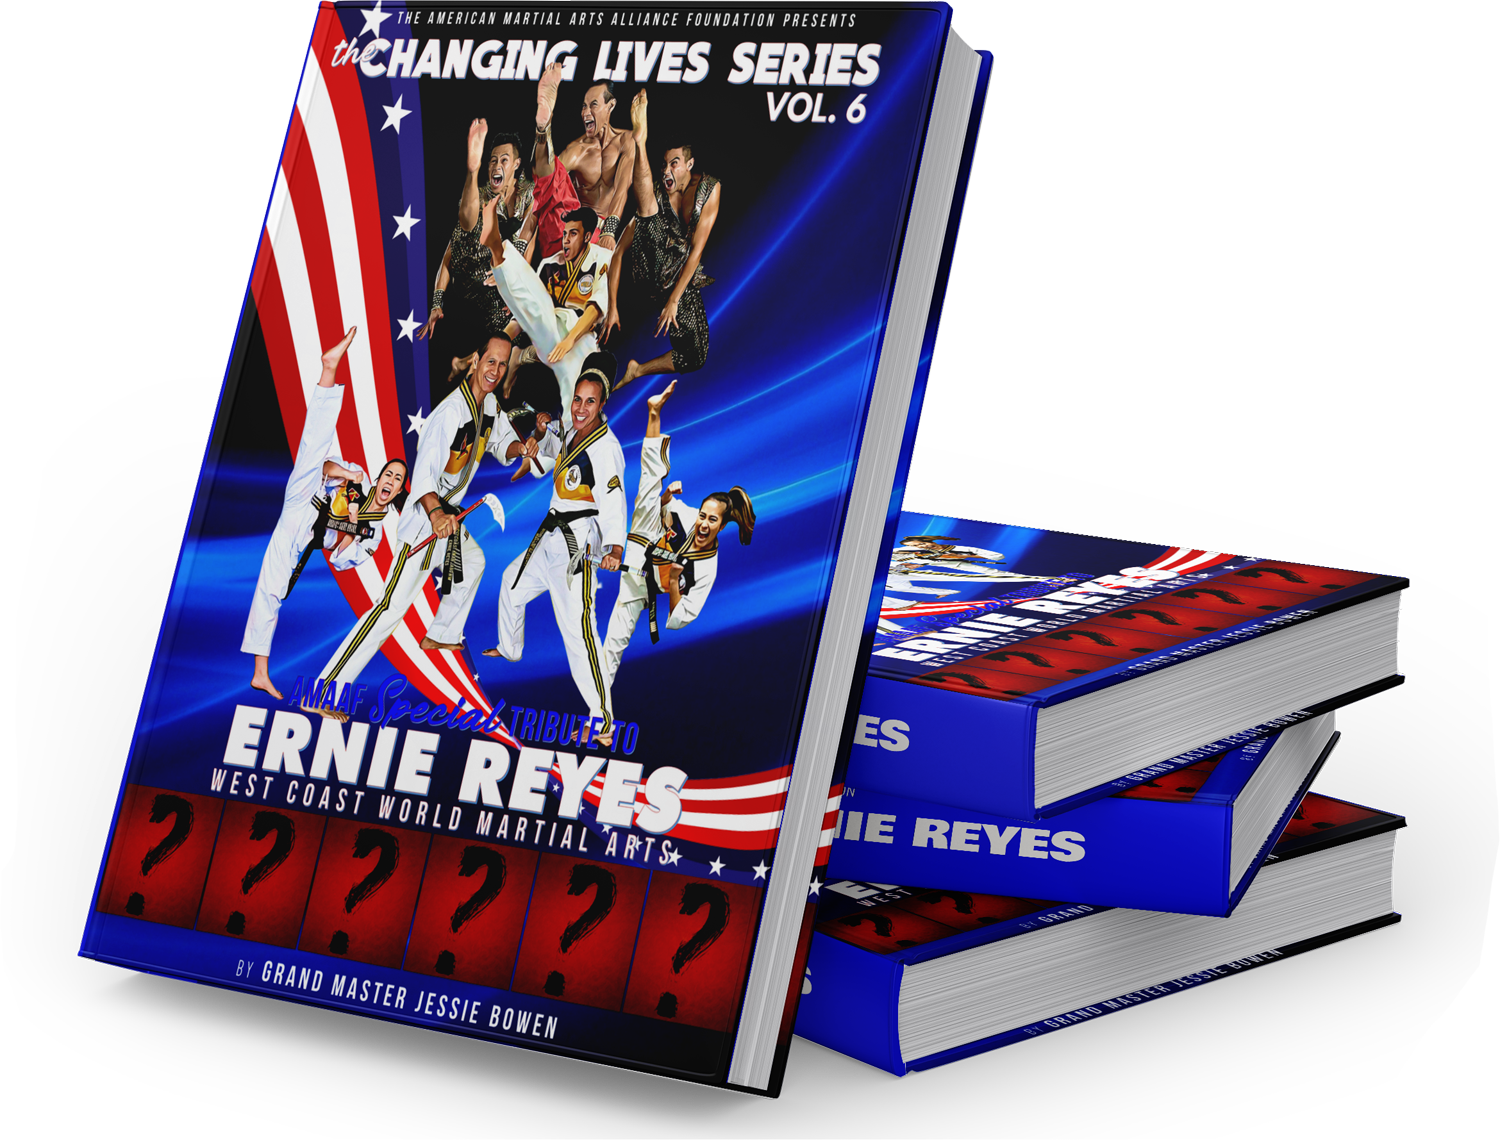 Release of the Changing Lives Series: Special Tribute to Ernie Reyes Biography Book